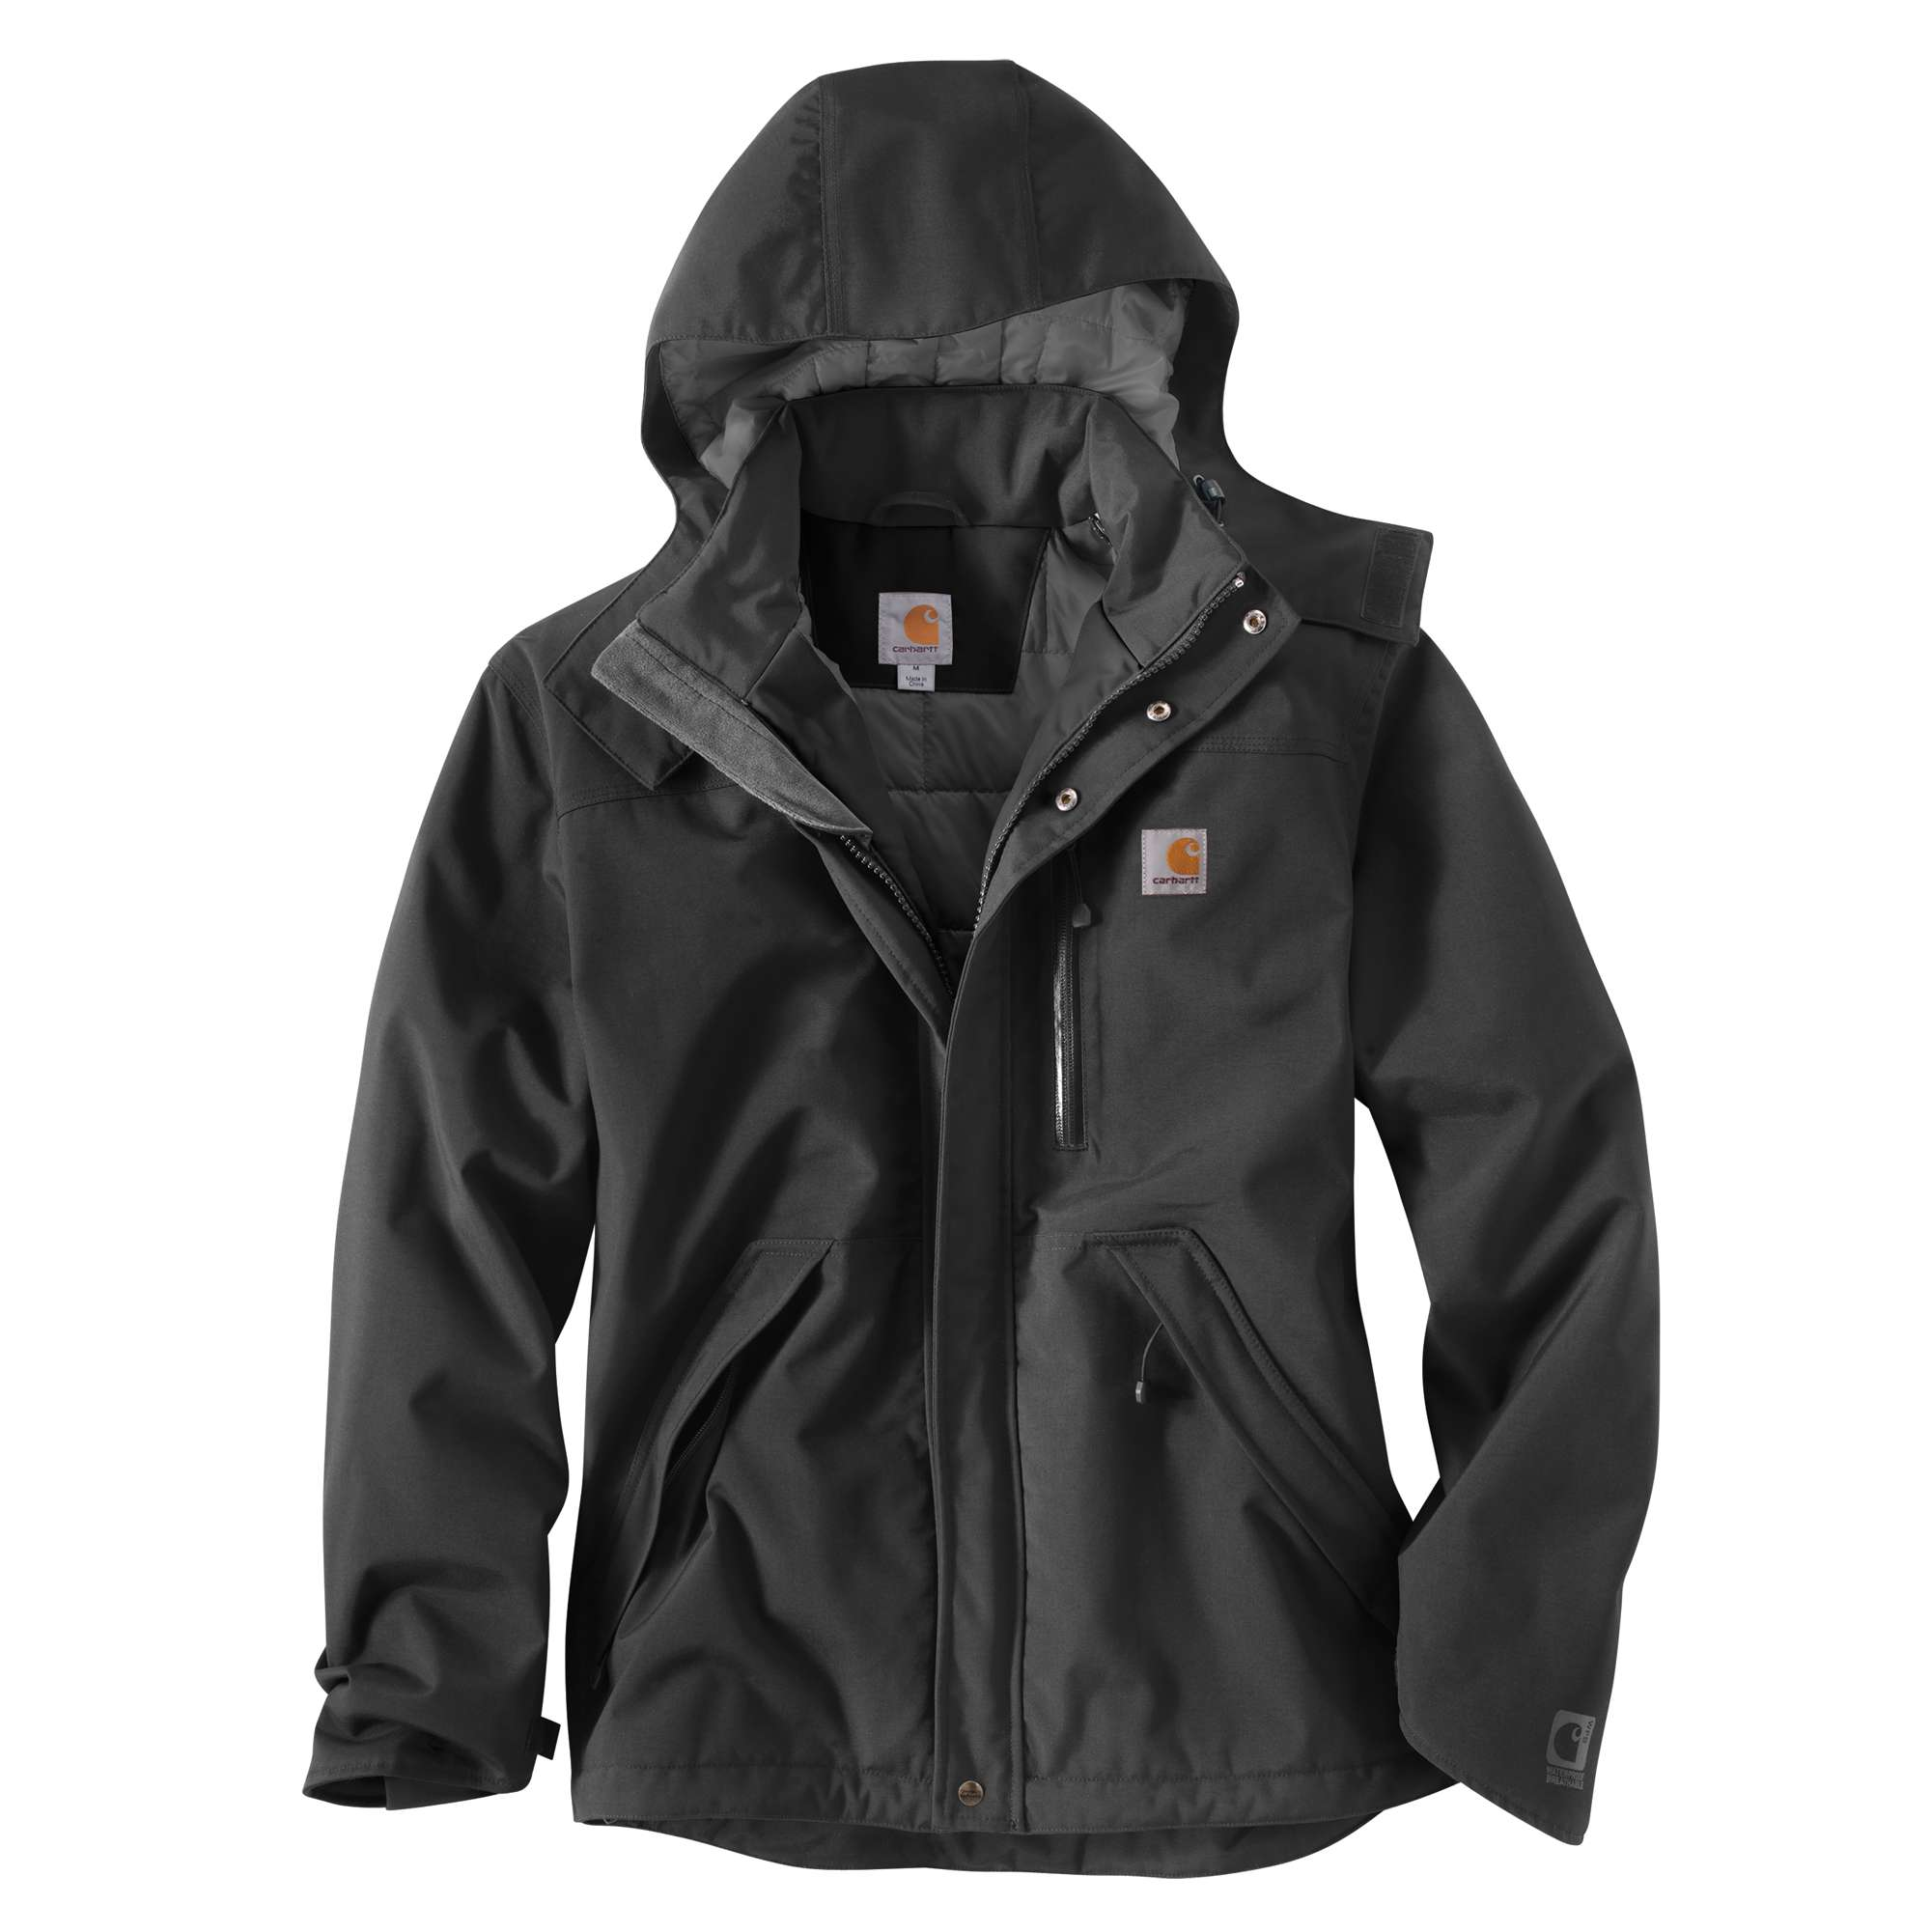 Carhartt Insulated Waterproof Breathable Jacket